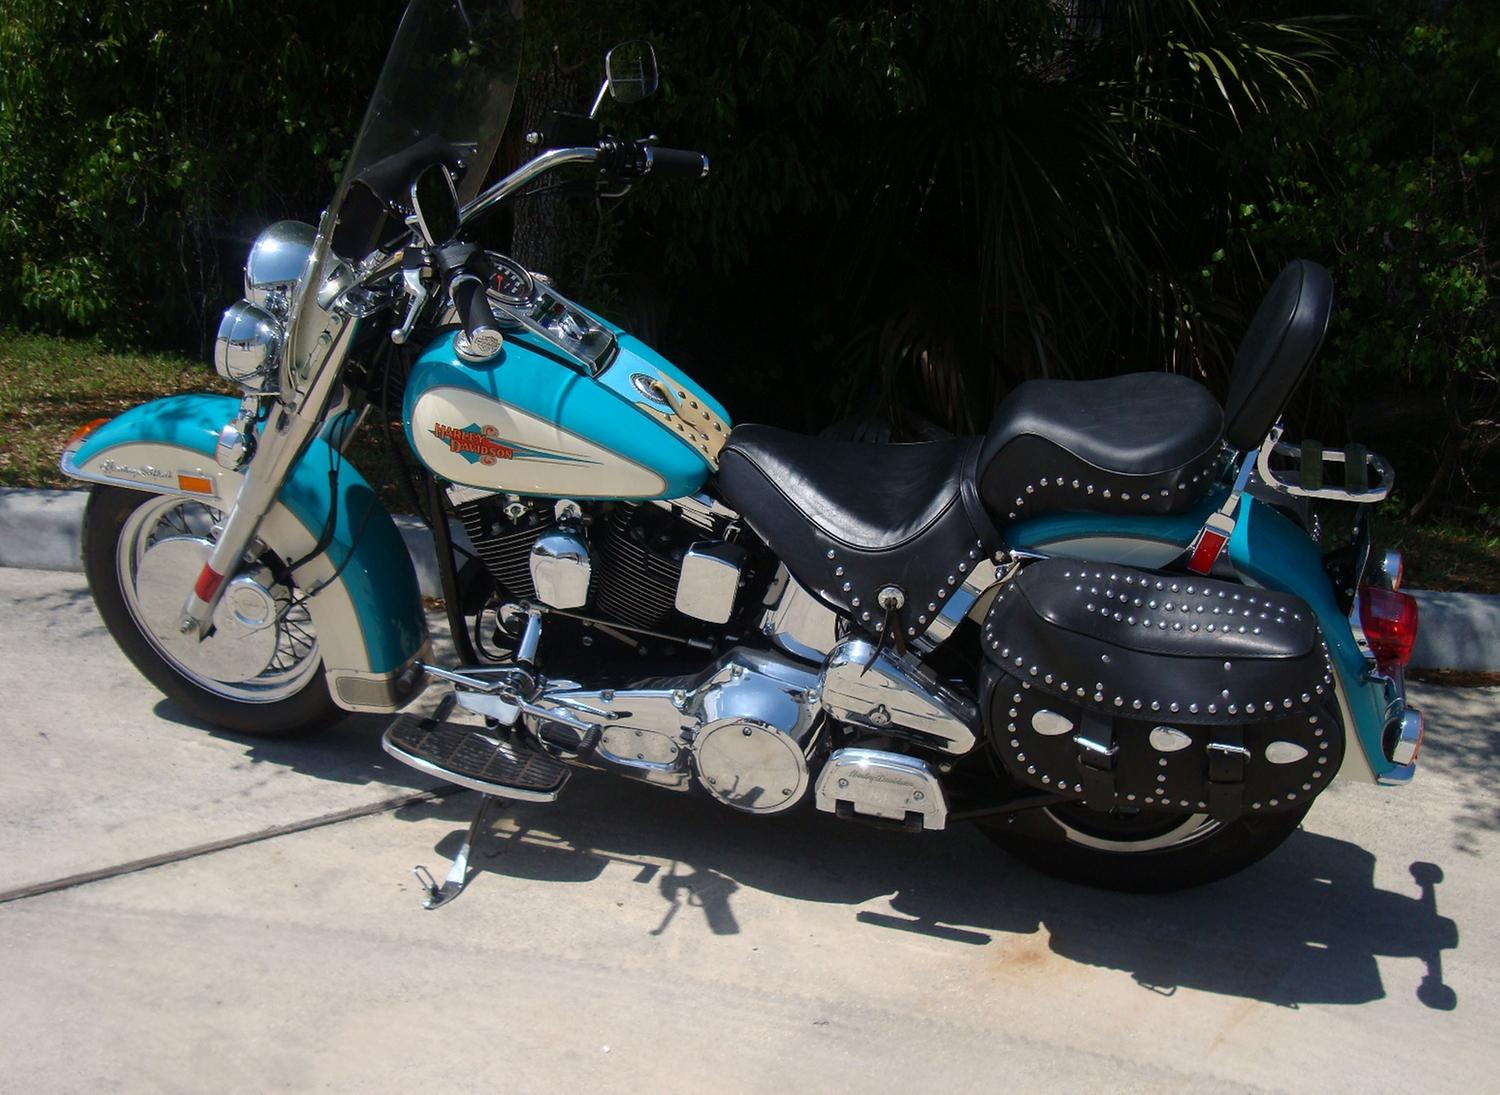 1992 Harley Davidson Softail Heritage Classic Motorcycle With 453